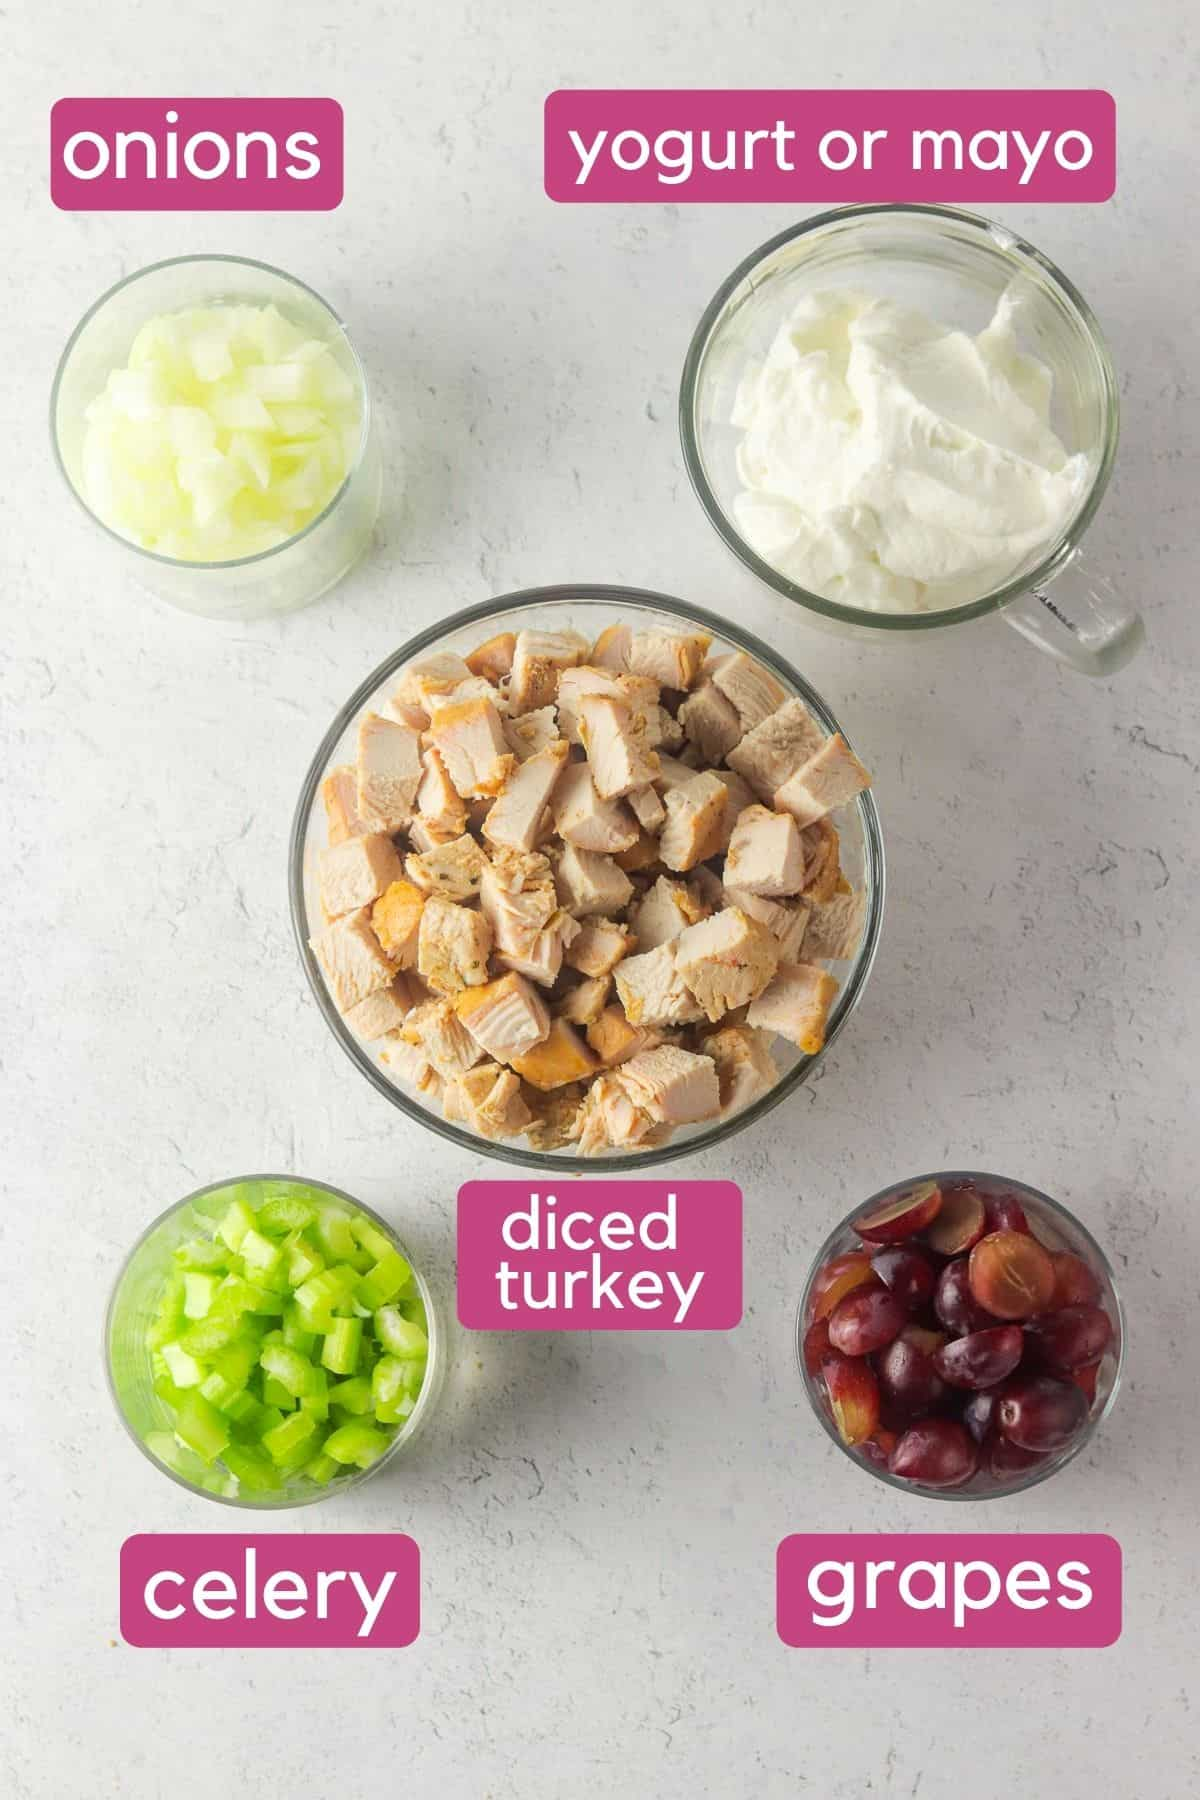 ingredients for turkey salad with grapes.